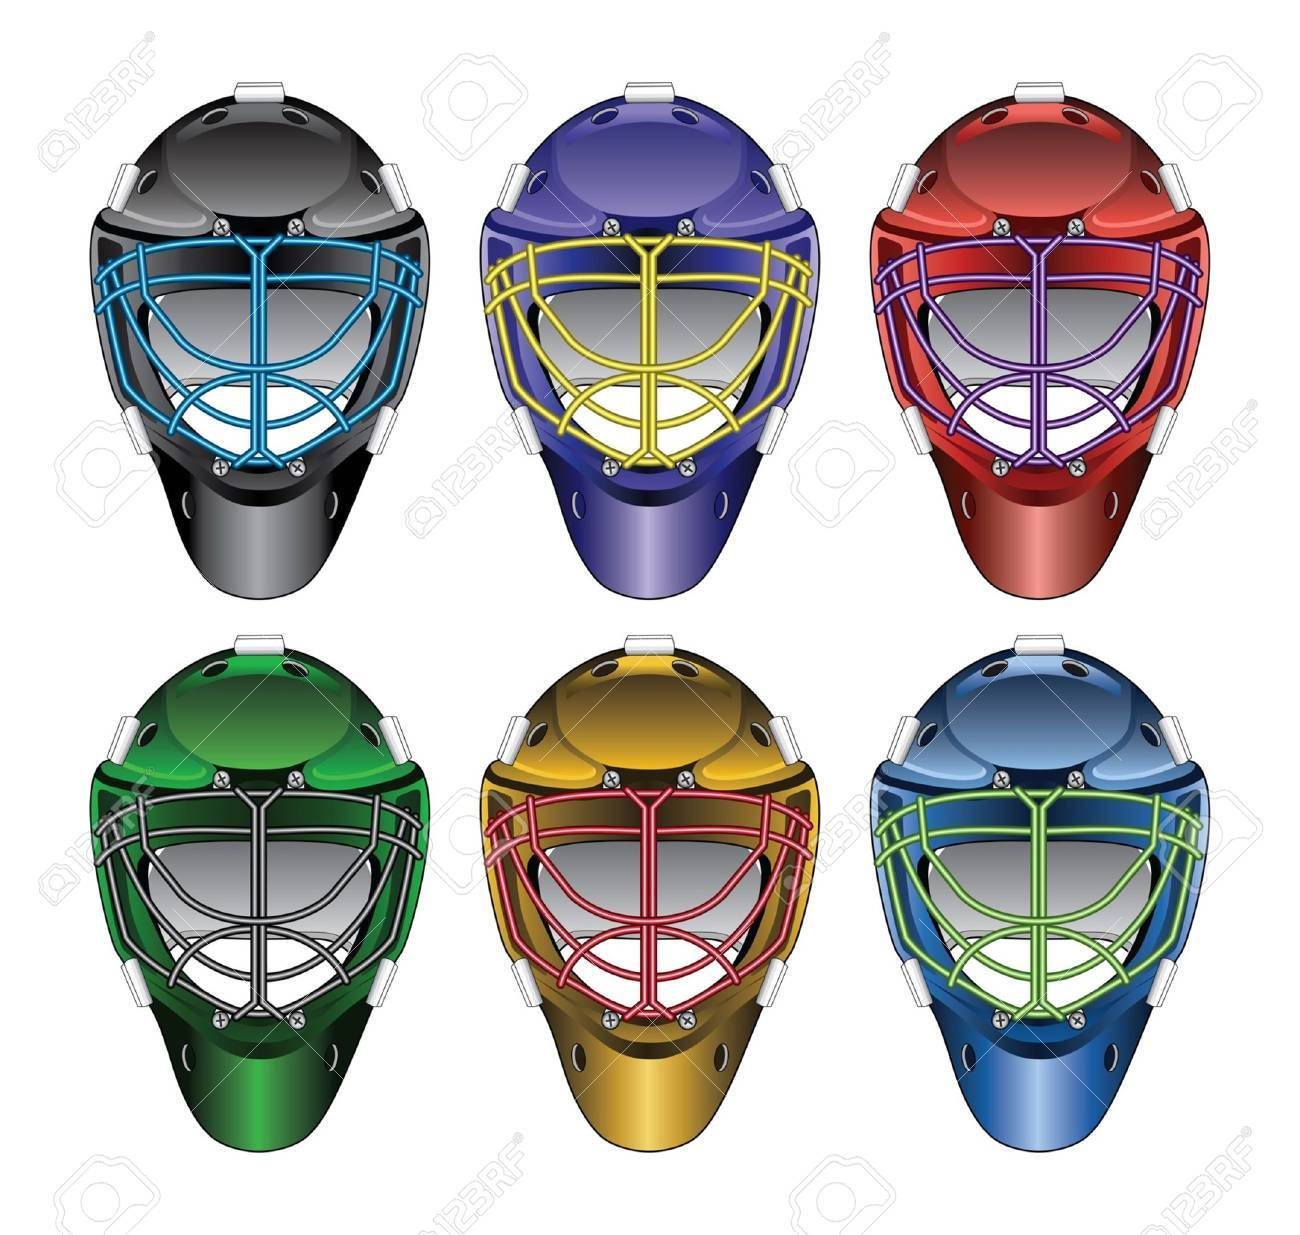 Ice Hockey Goalie Masks Is An Illustration Of Ice Hockey Goalie